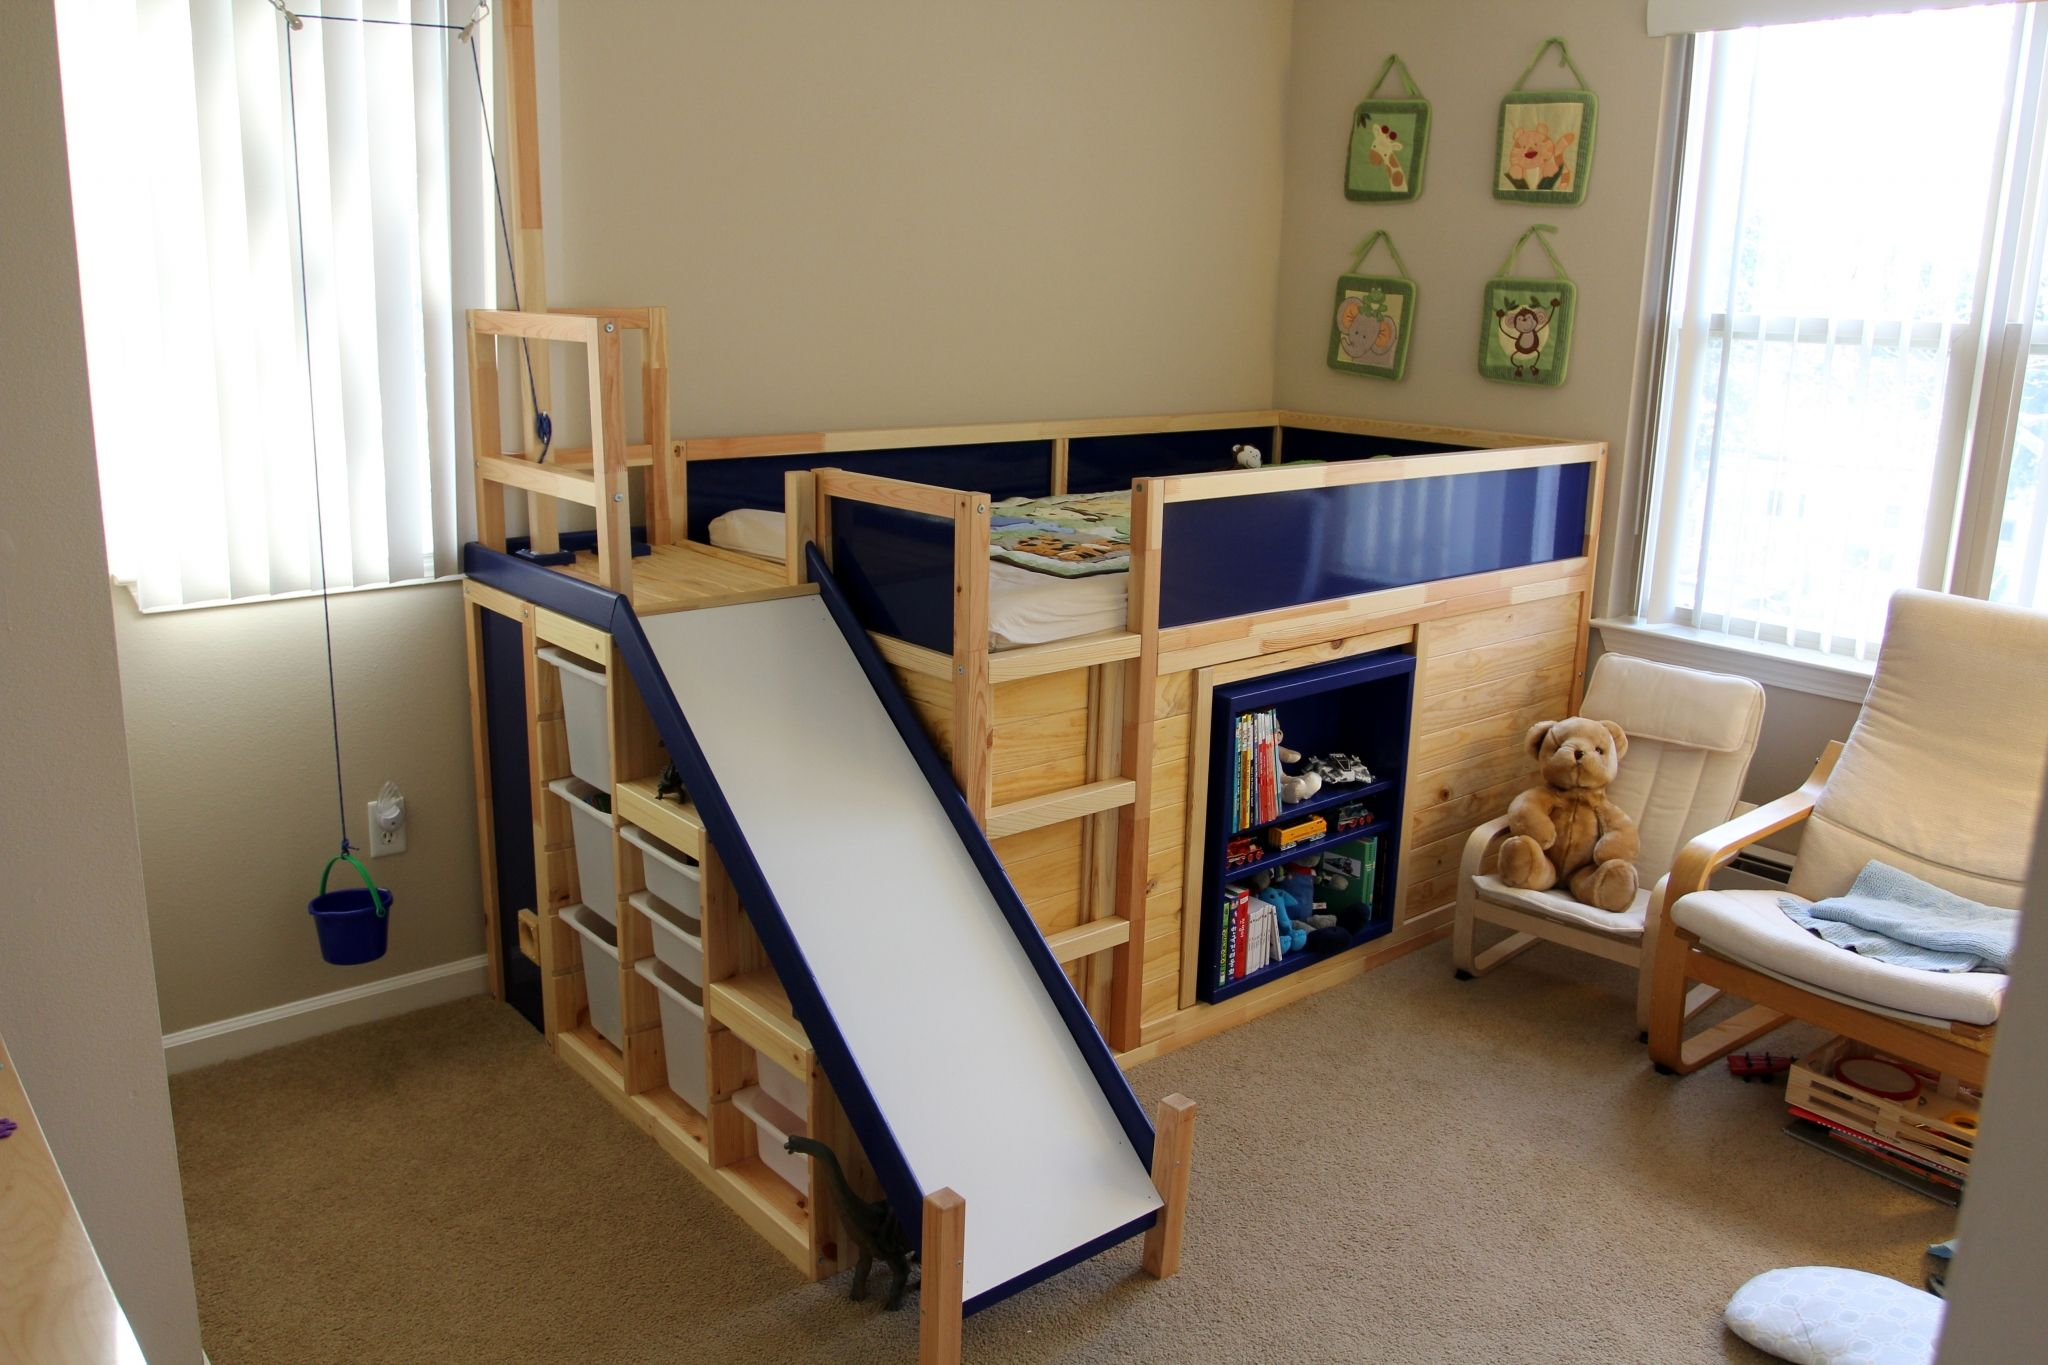 Learn How To Make An Awesome Kids Bed With Ikea Parts From A